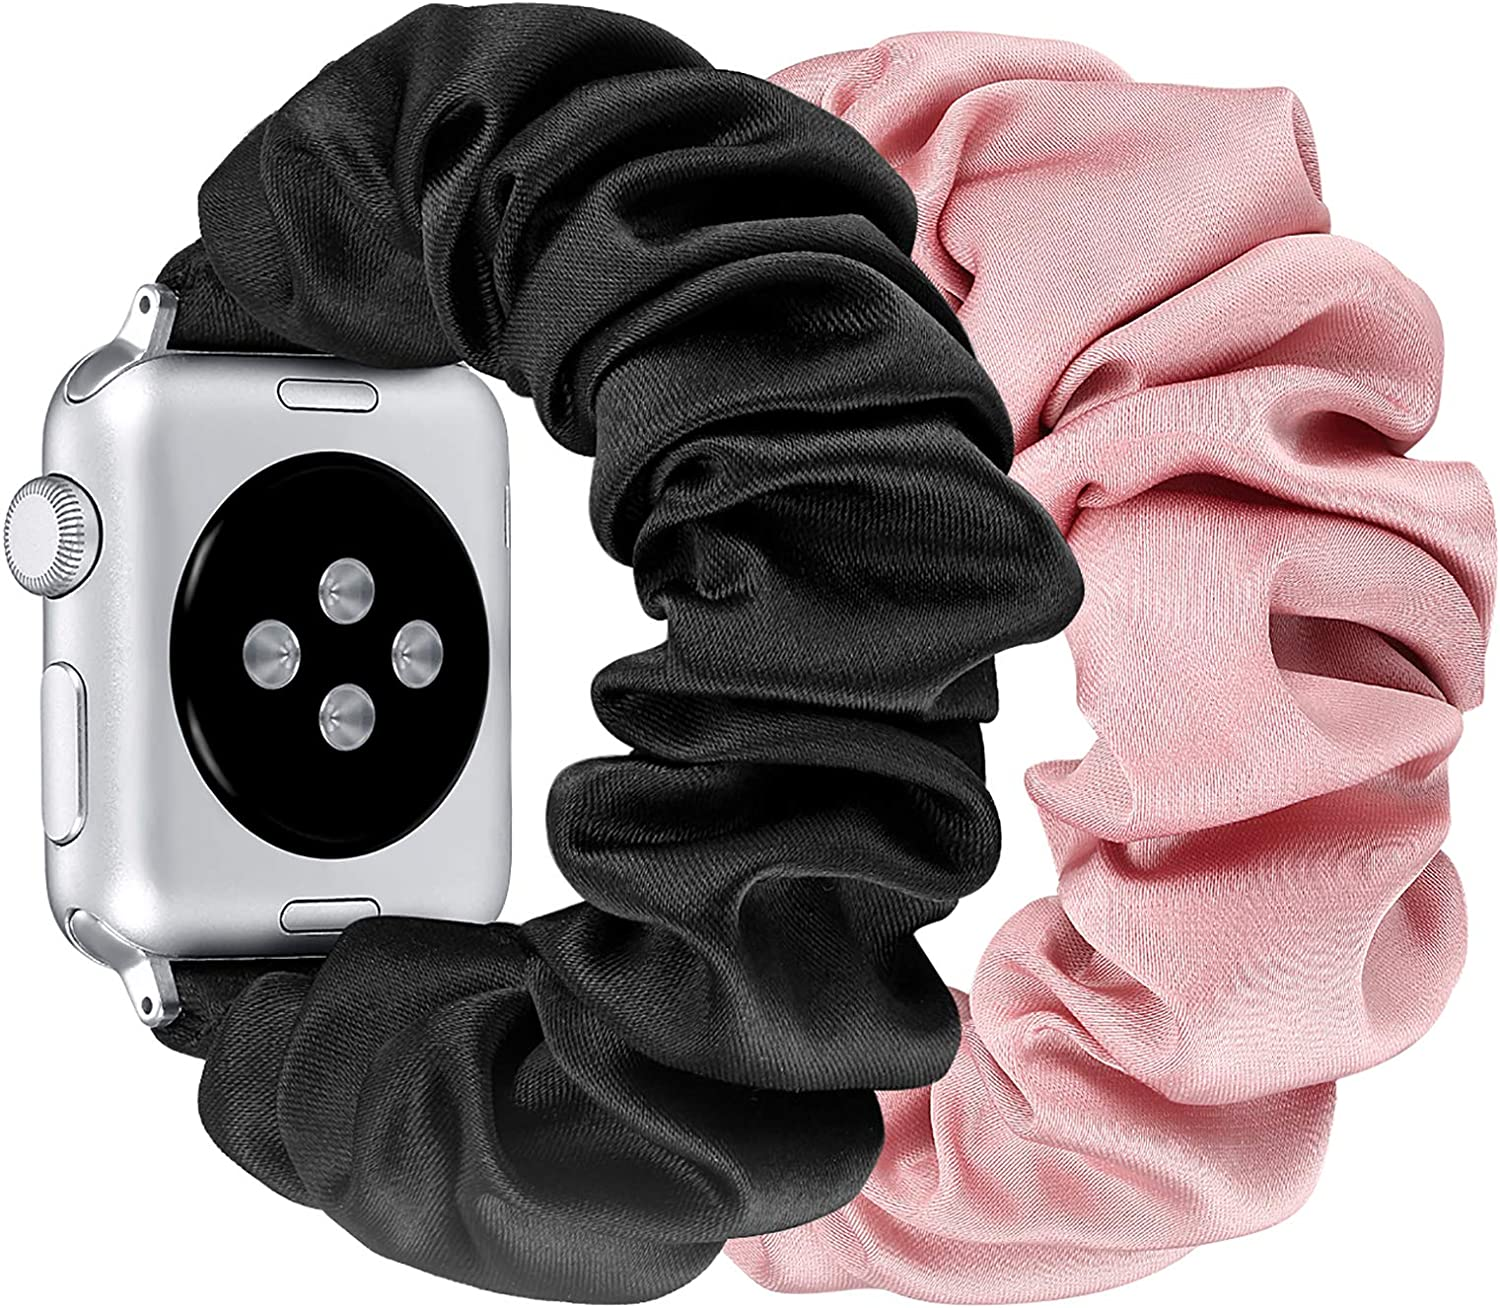 fastgo Compatible with Scrunchie Apple Watch Band Series 5/4 38mm/40mm,Women Girl Gift Elastic Bracelet Sport Strap Stretchy Soft Fabric Replacement Wristband for Iwatch 3/2/1 (Pink & Black,38mm/40mm)